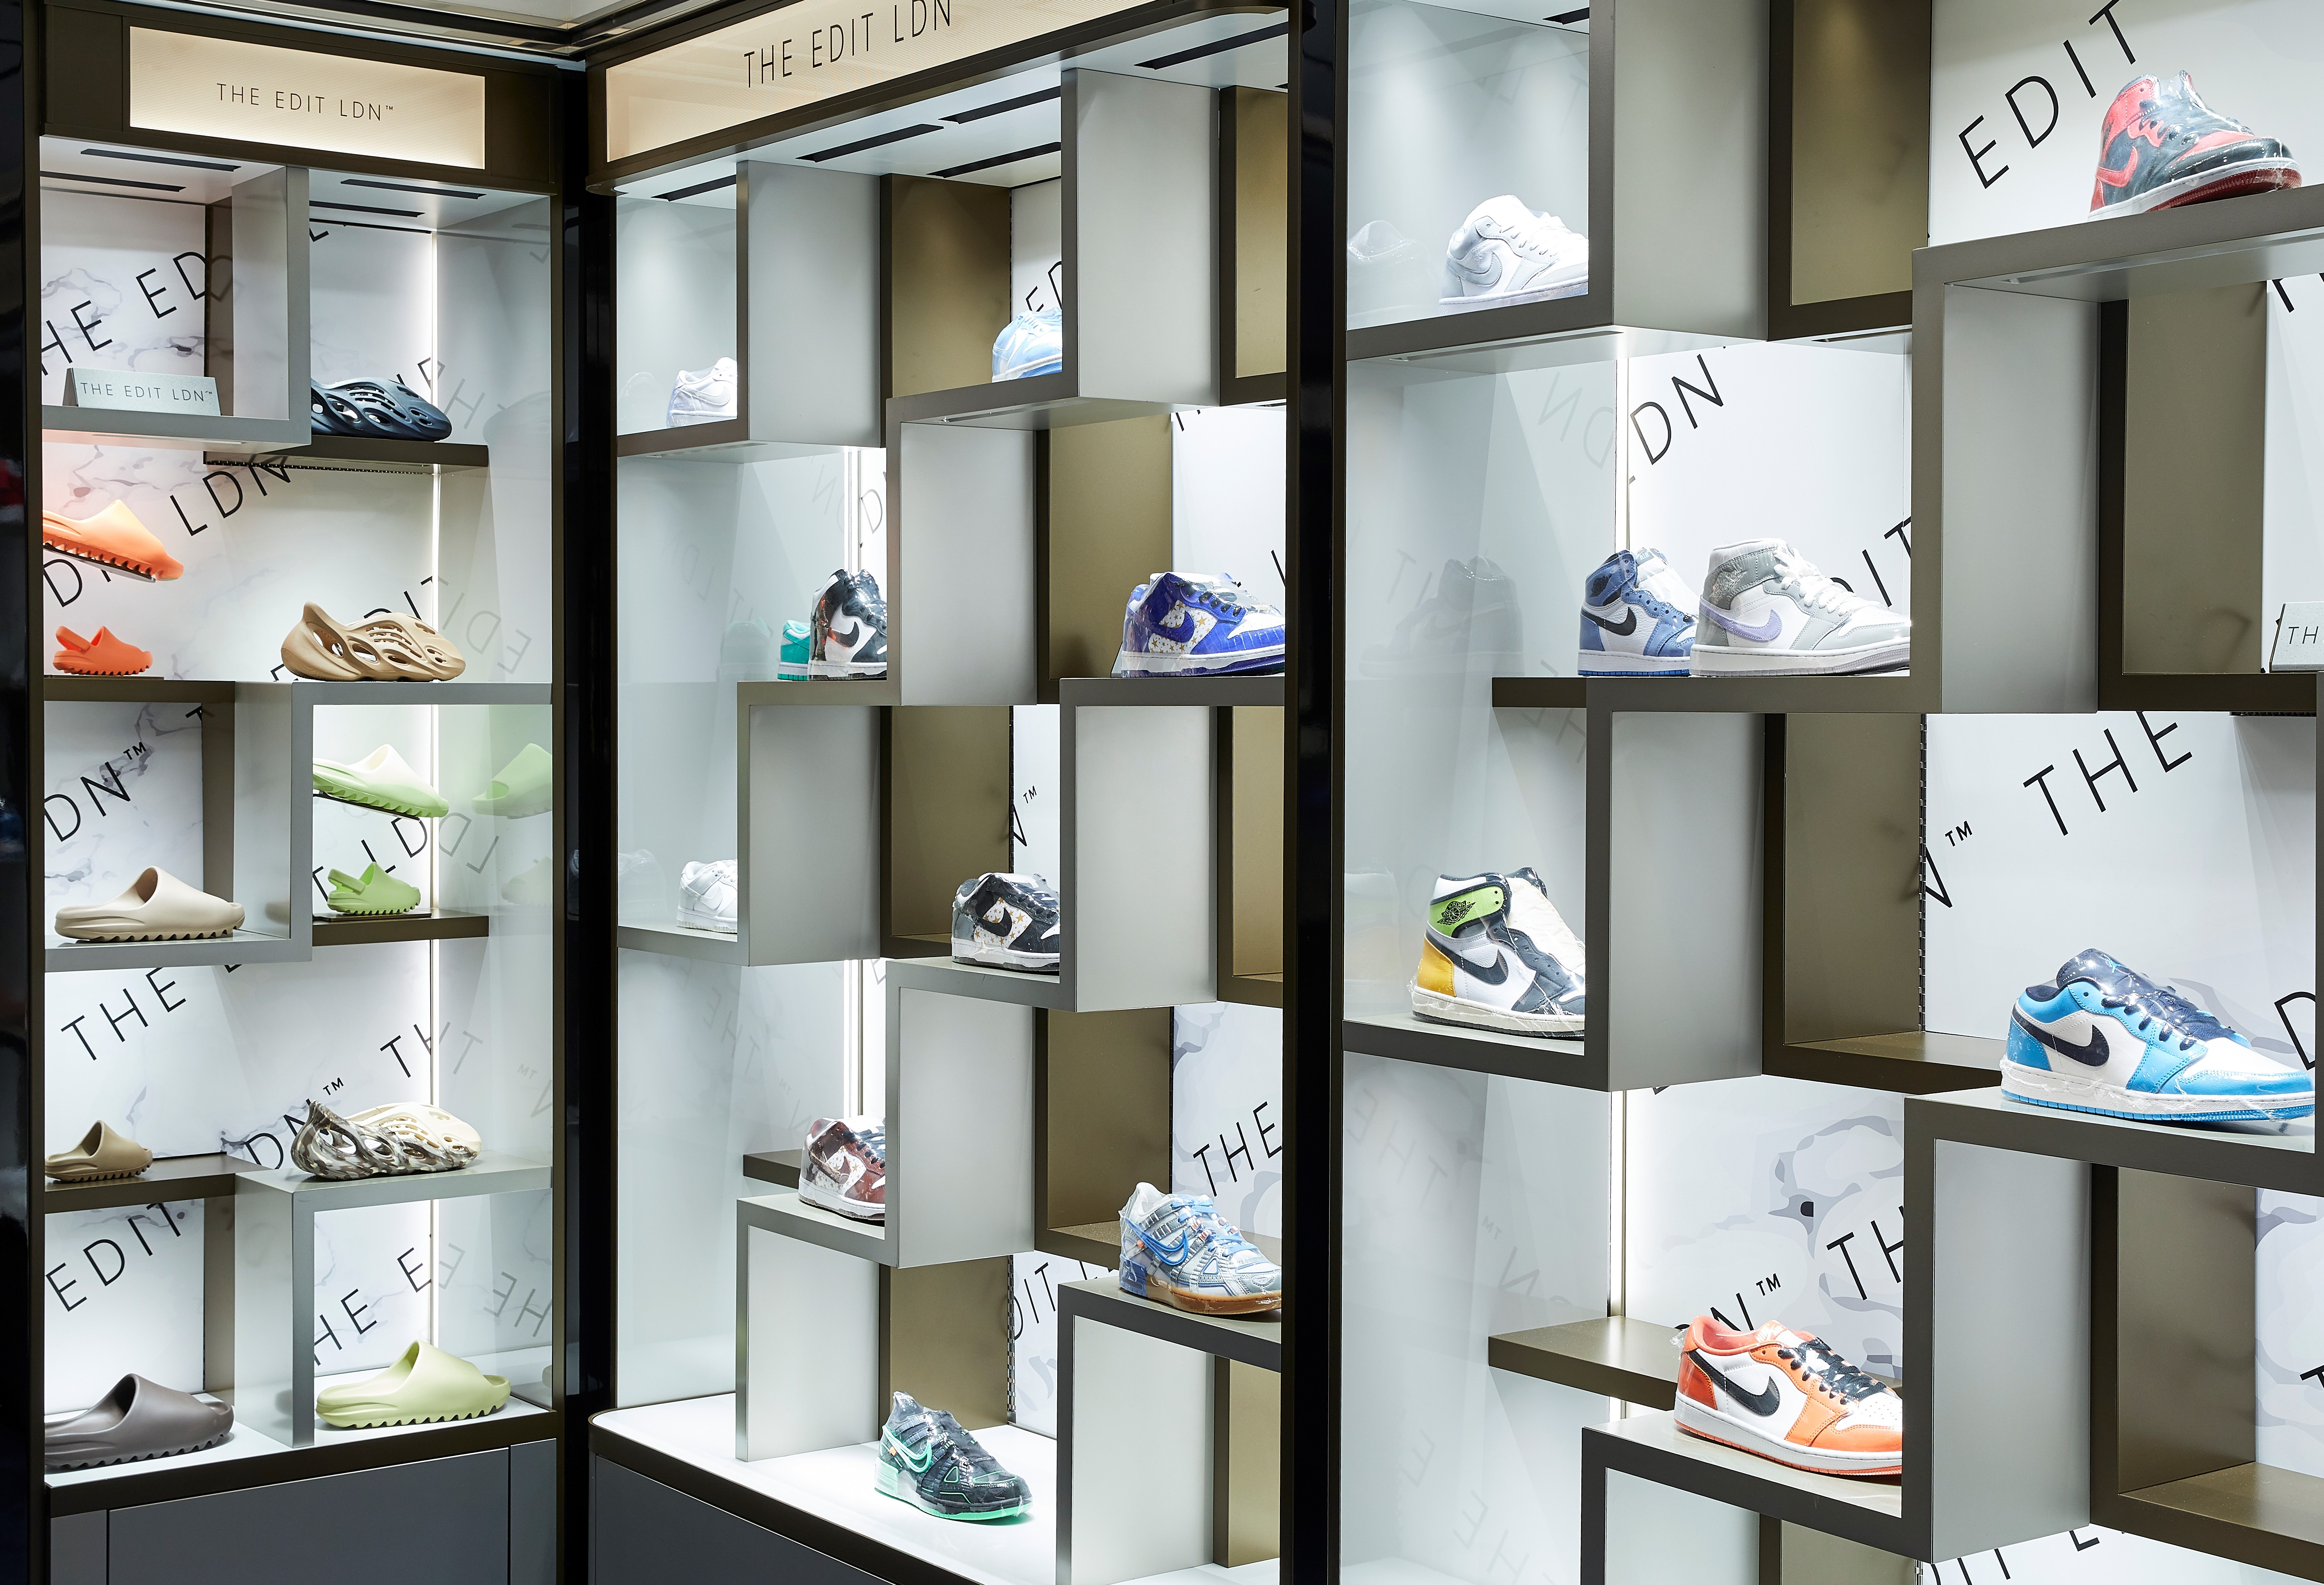 On display: a wide variety of limited edition sneakers